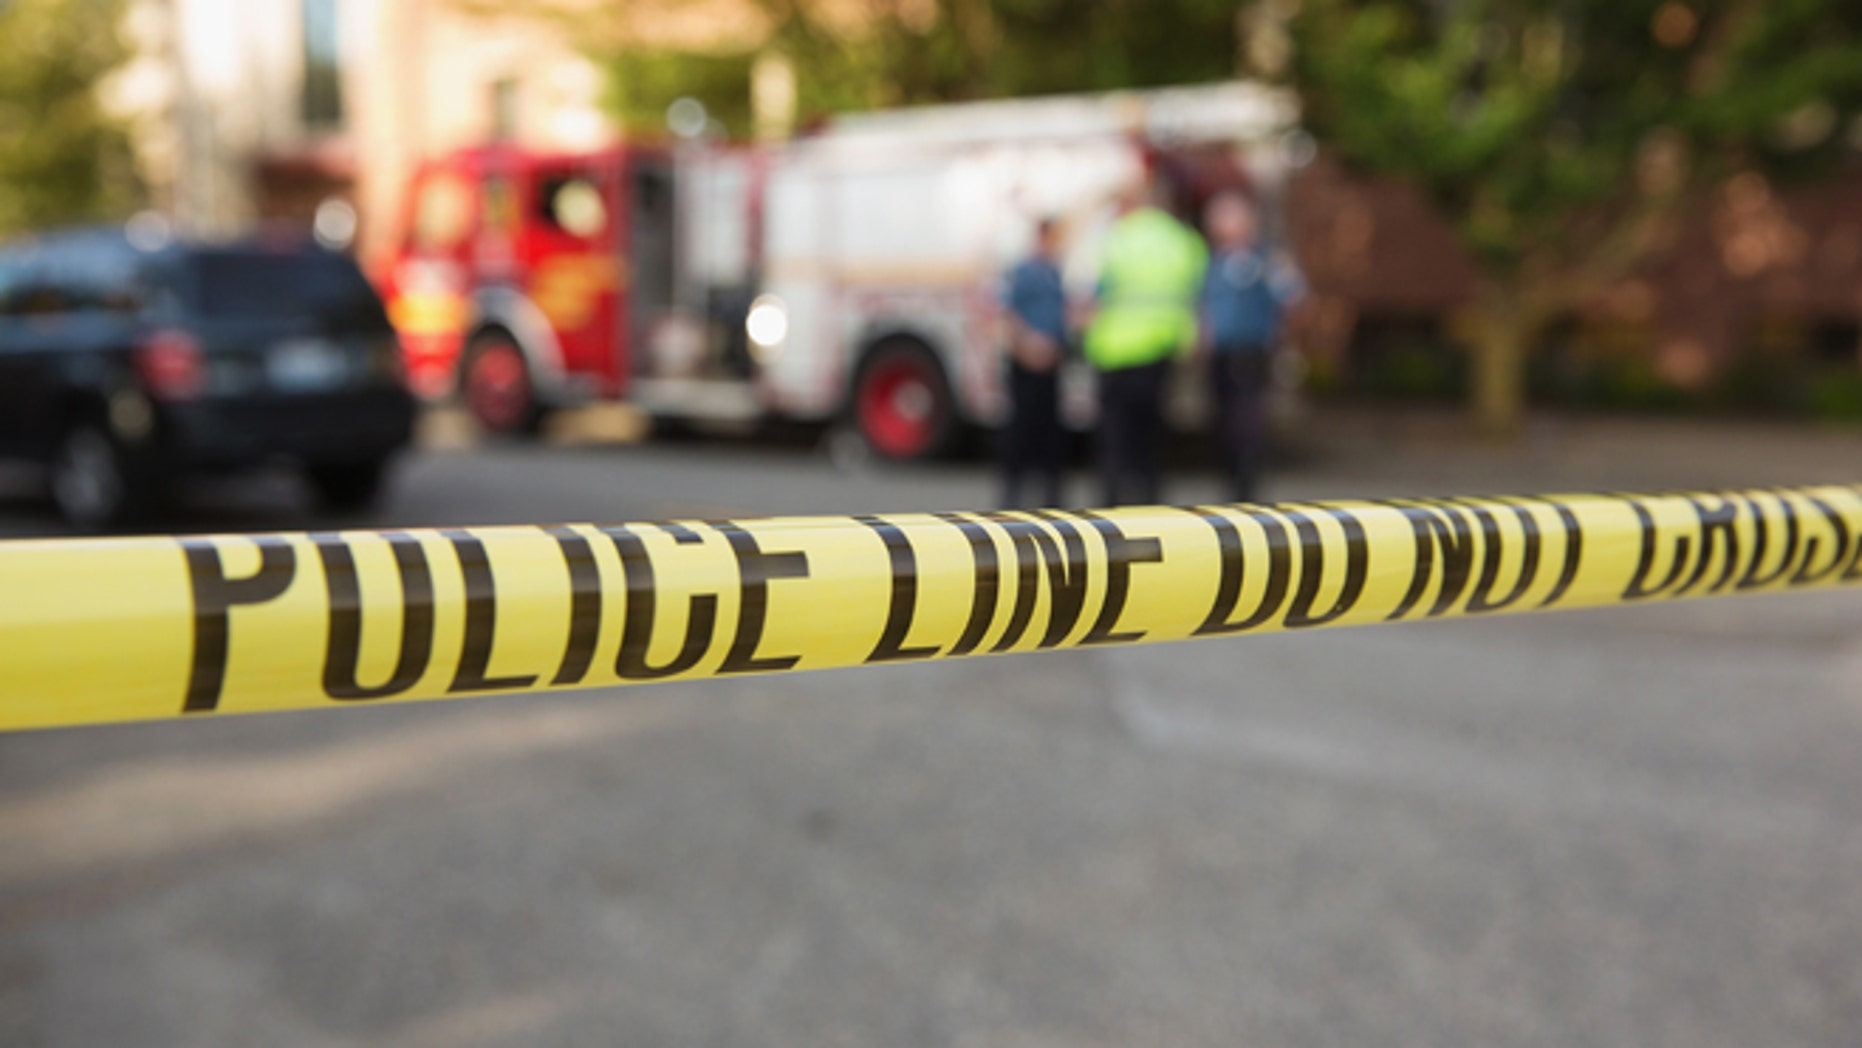 SEATTLE, WA - JUNE 05:  Police tape marks the crime scene after a shooting at Seattle Pacific University on June 5, 2014 in Seattle, Washington.  A gunman is in custody after four people were shot on campus resulting in one death. (Photo by Mat Hayward/Getty Images)